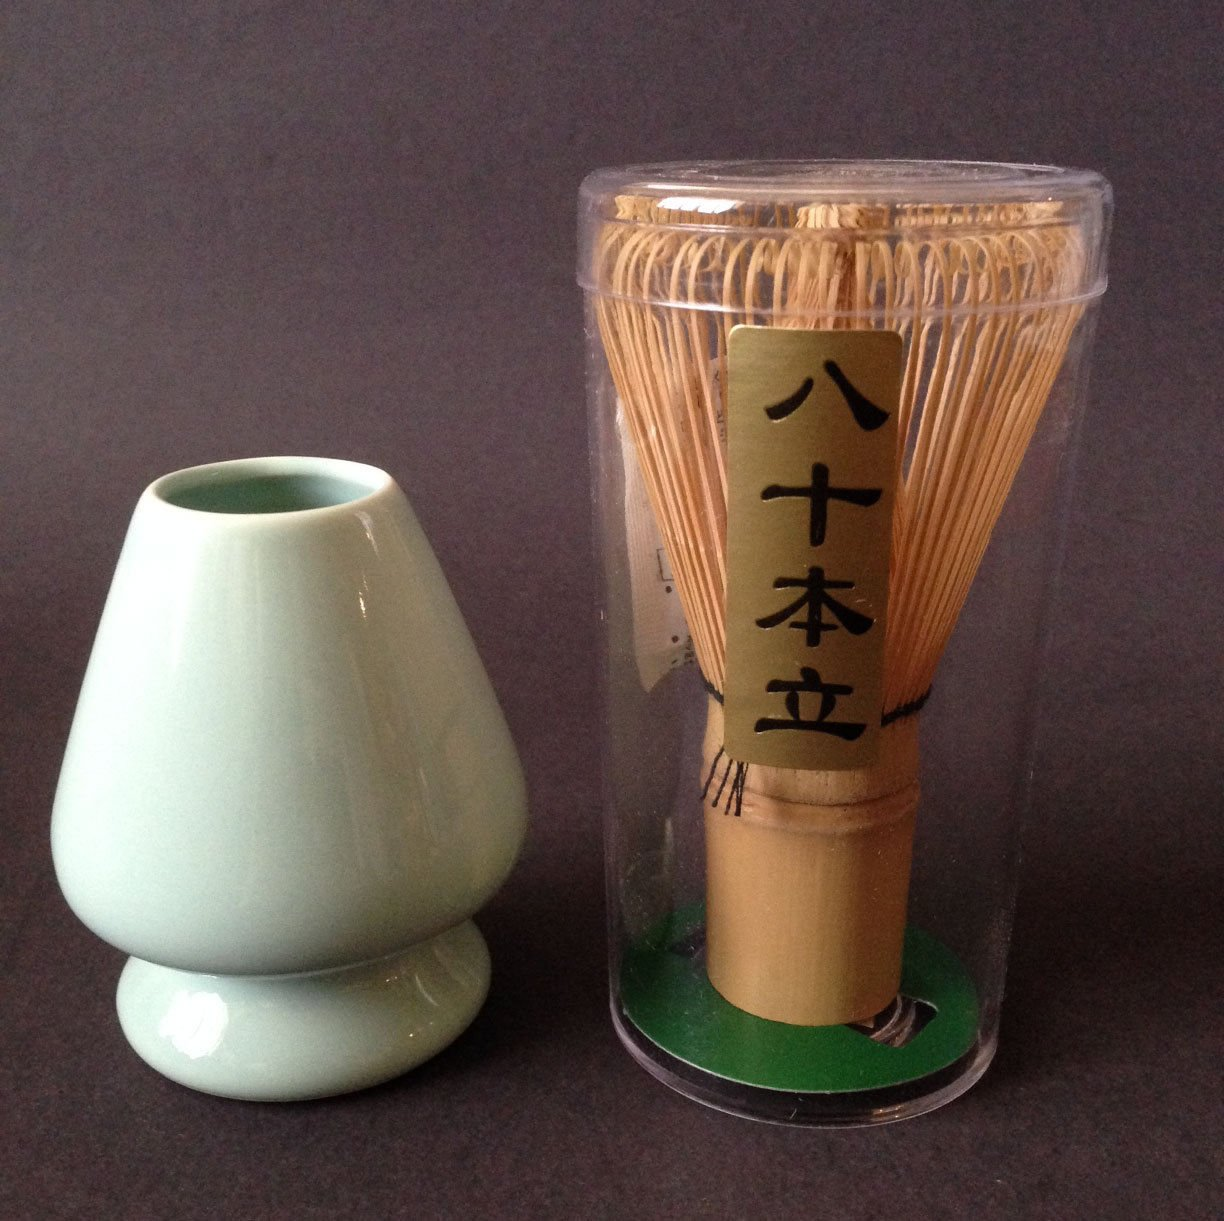 Japanese 80 Prong Matcha Tea Ceremony Bamboo Whisk Chasen Brush with Stand Shaper